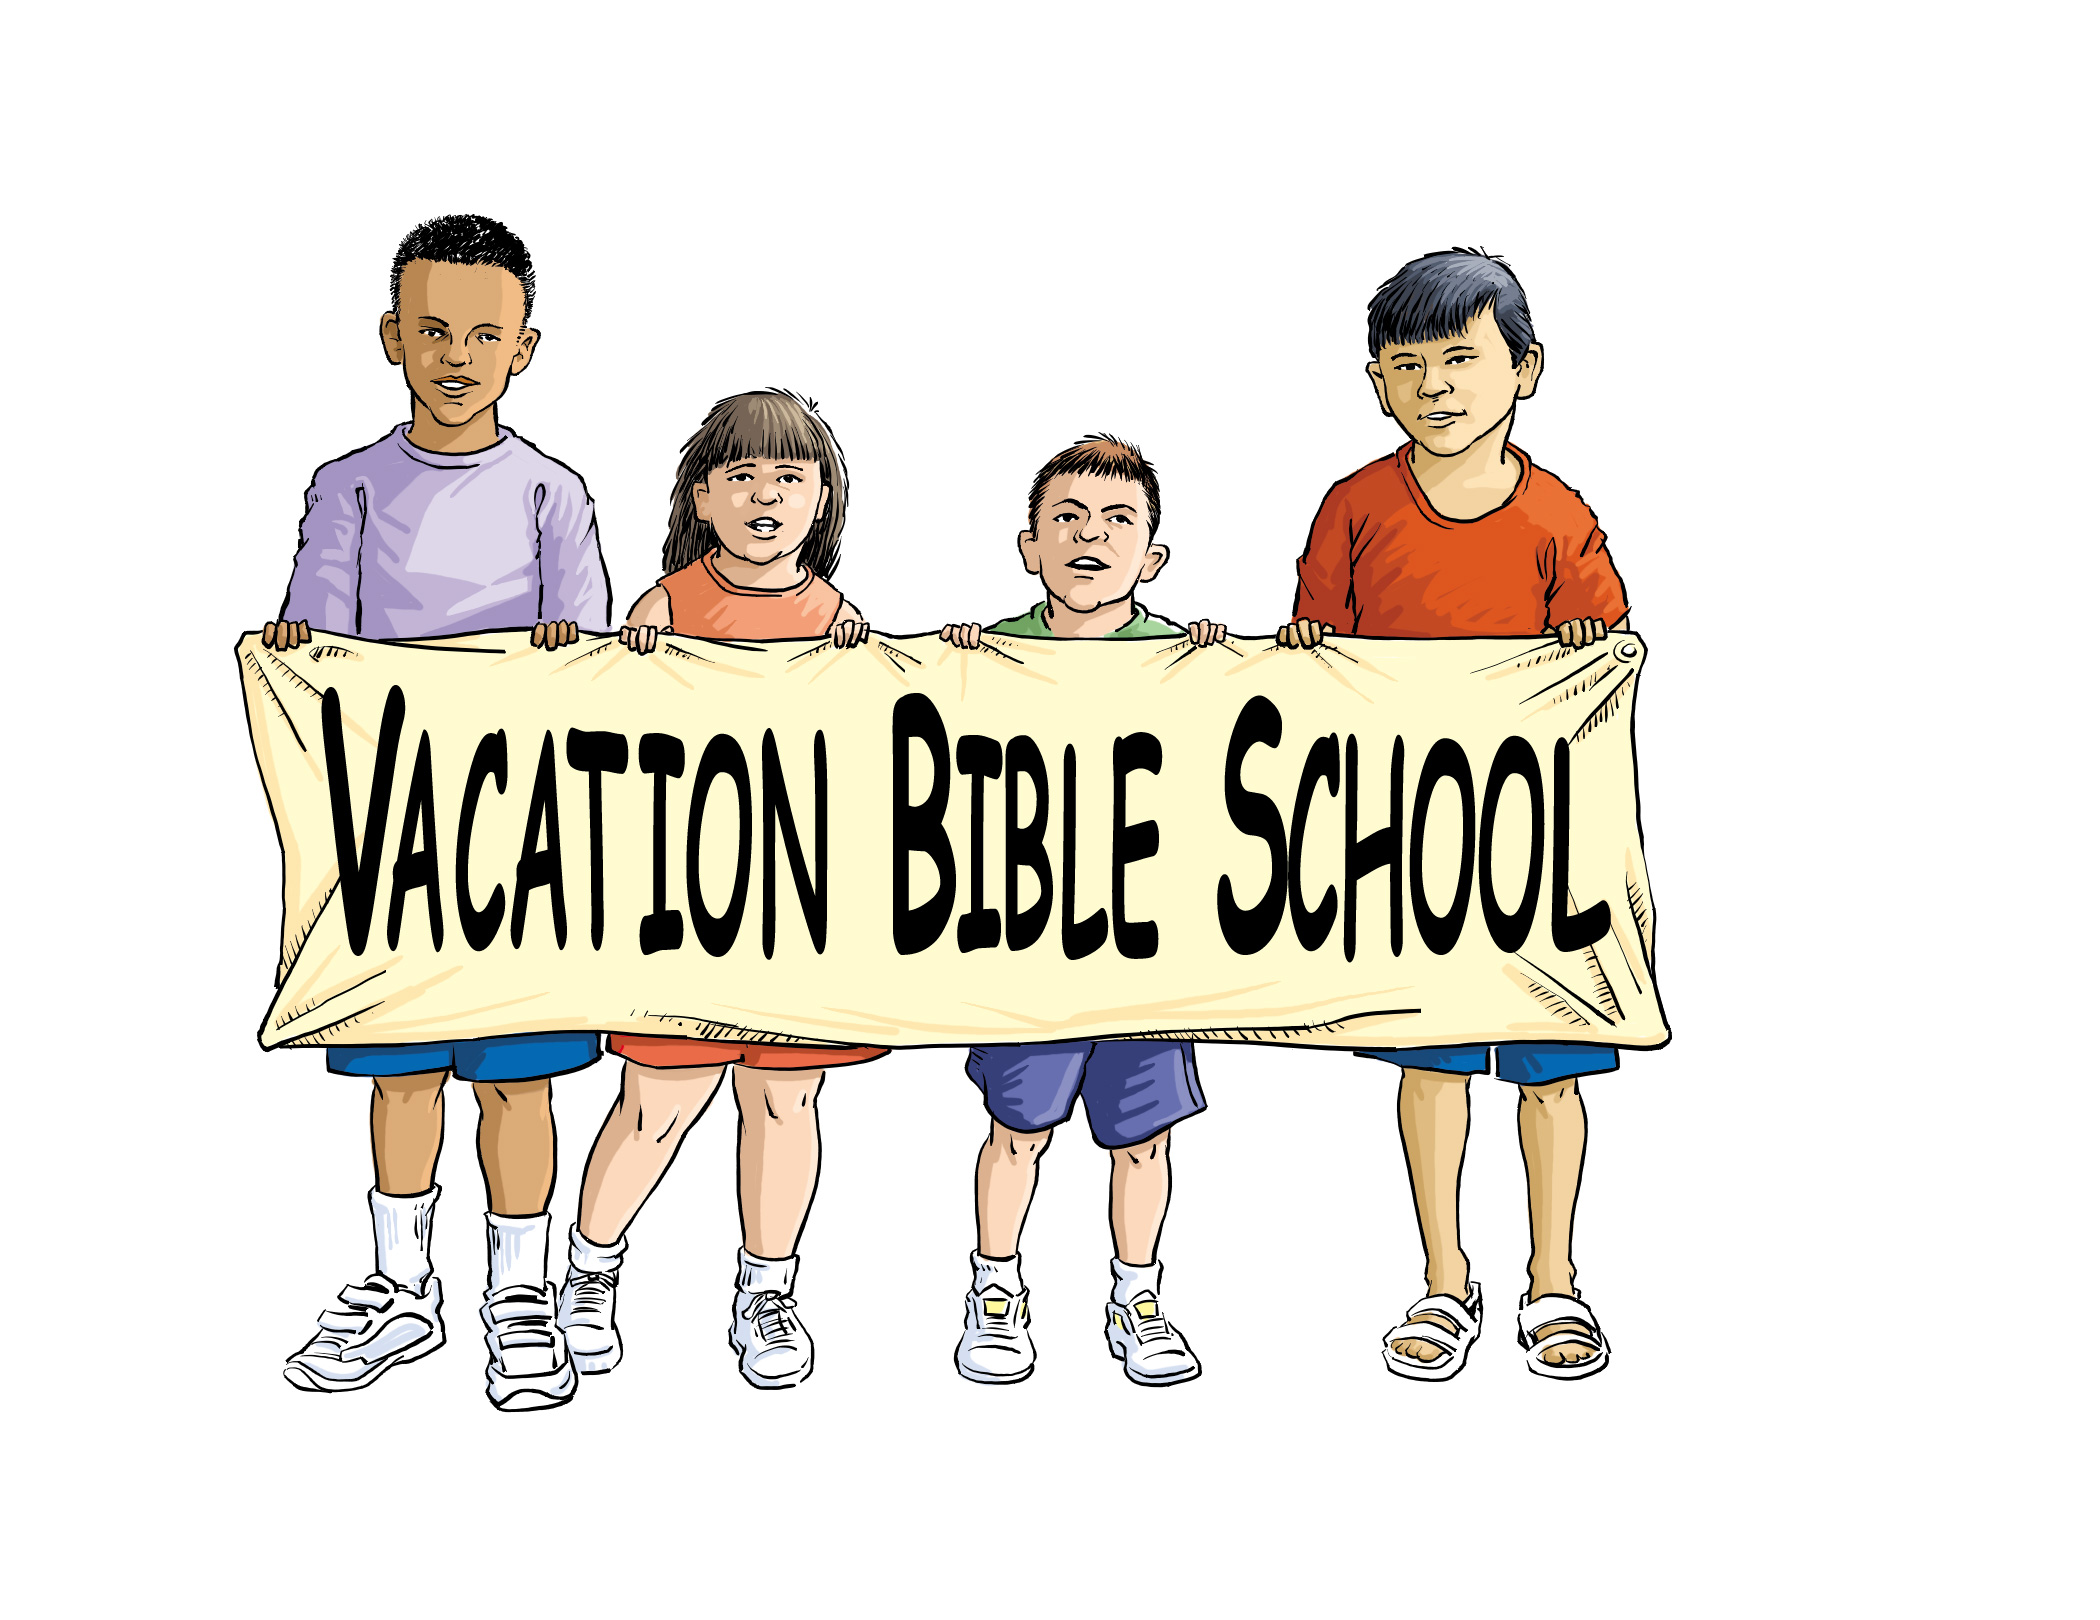 vacation_bible_school.jpg